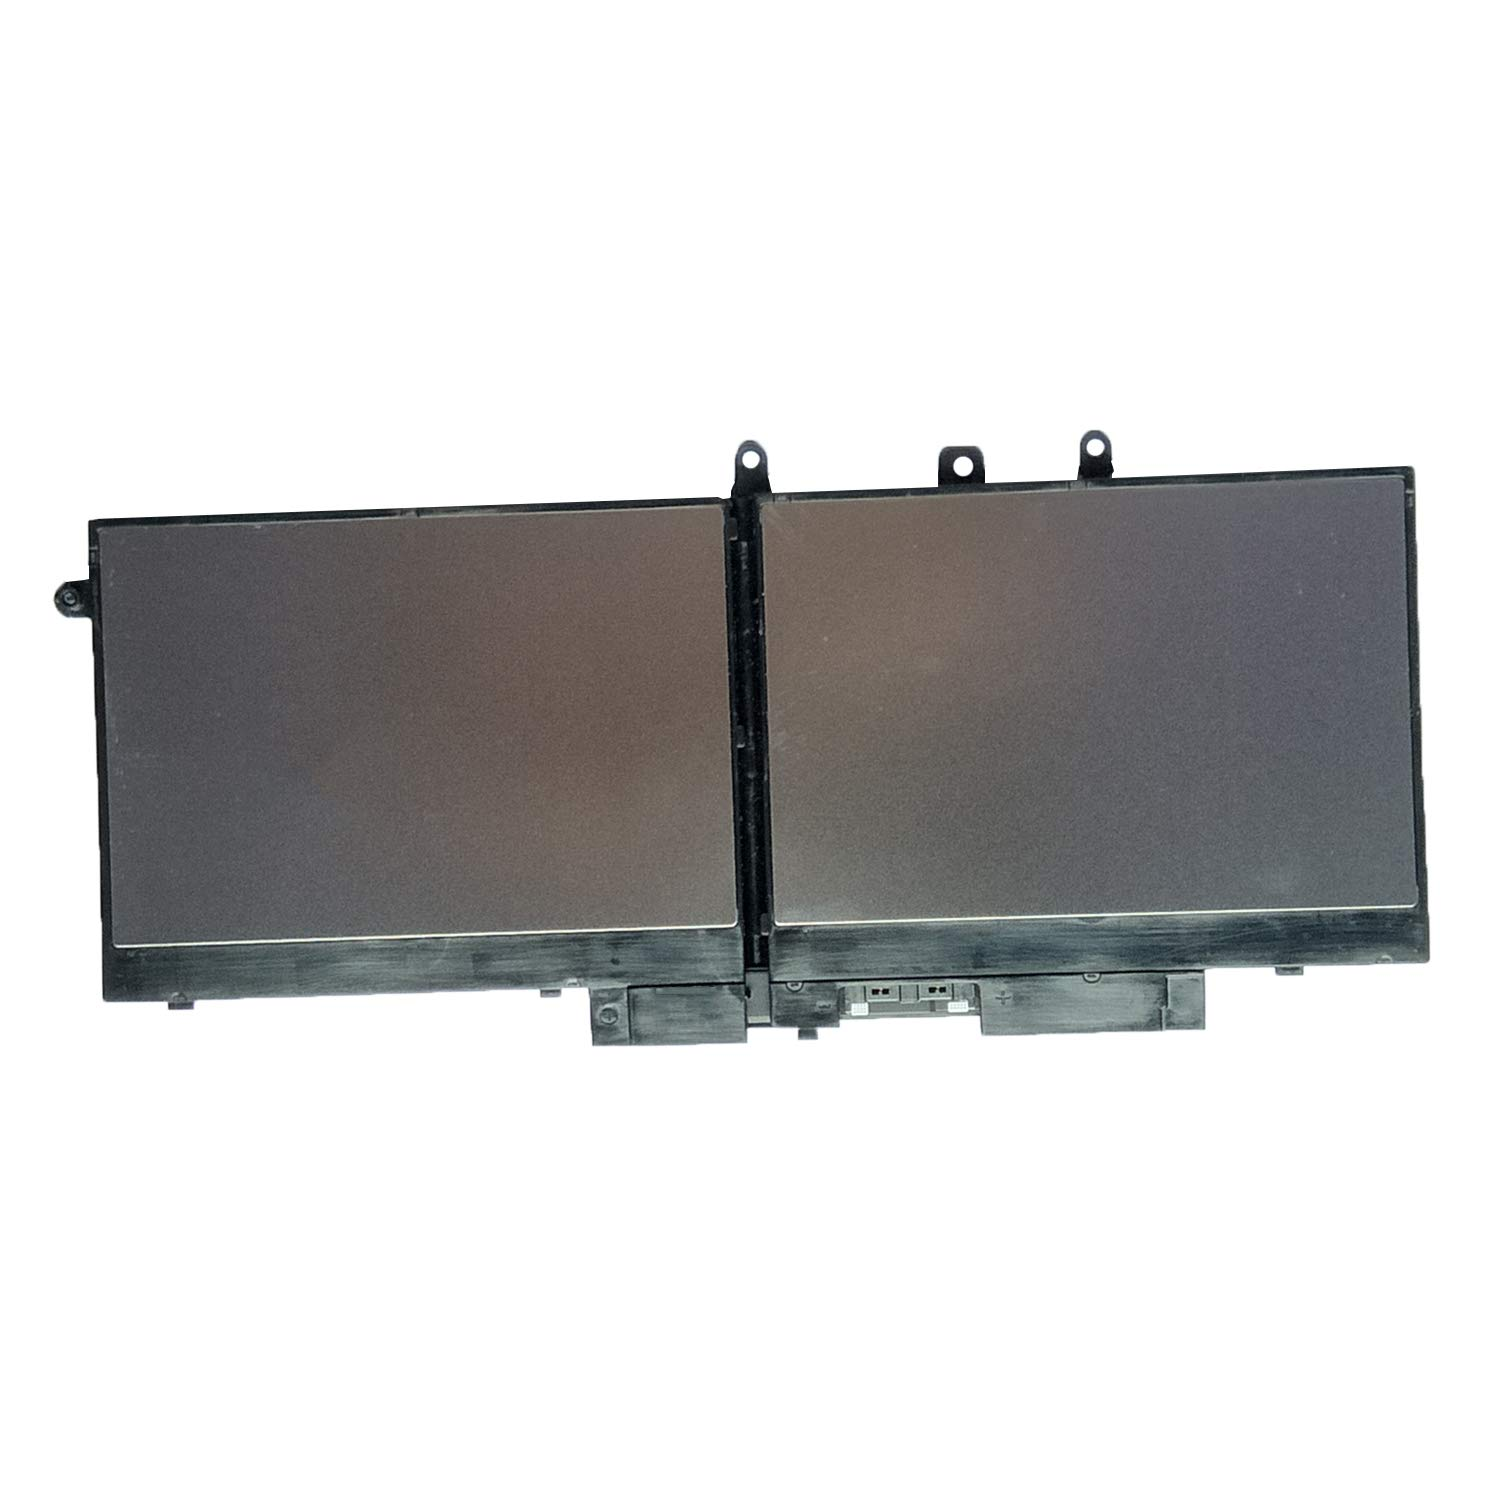 JIAZIJIA GJKNX Laptop Battery Replacement for Dell Latitude 14 5480 E5480 15 5580 E5580 14 5490 E5490 15 5590 E5590 Precision 3520 3530 Series 93FTF 3DDDG GD1JP DY9NT 5YHR4 7.6V 68Wh 8500mAh by JIAZIJIA (Image #3)